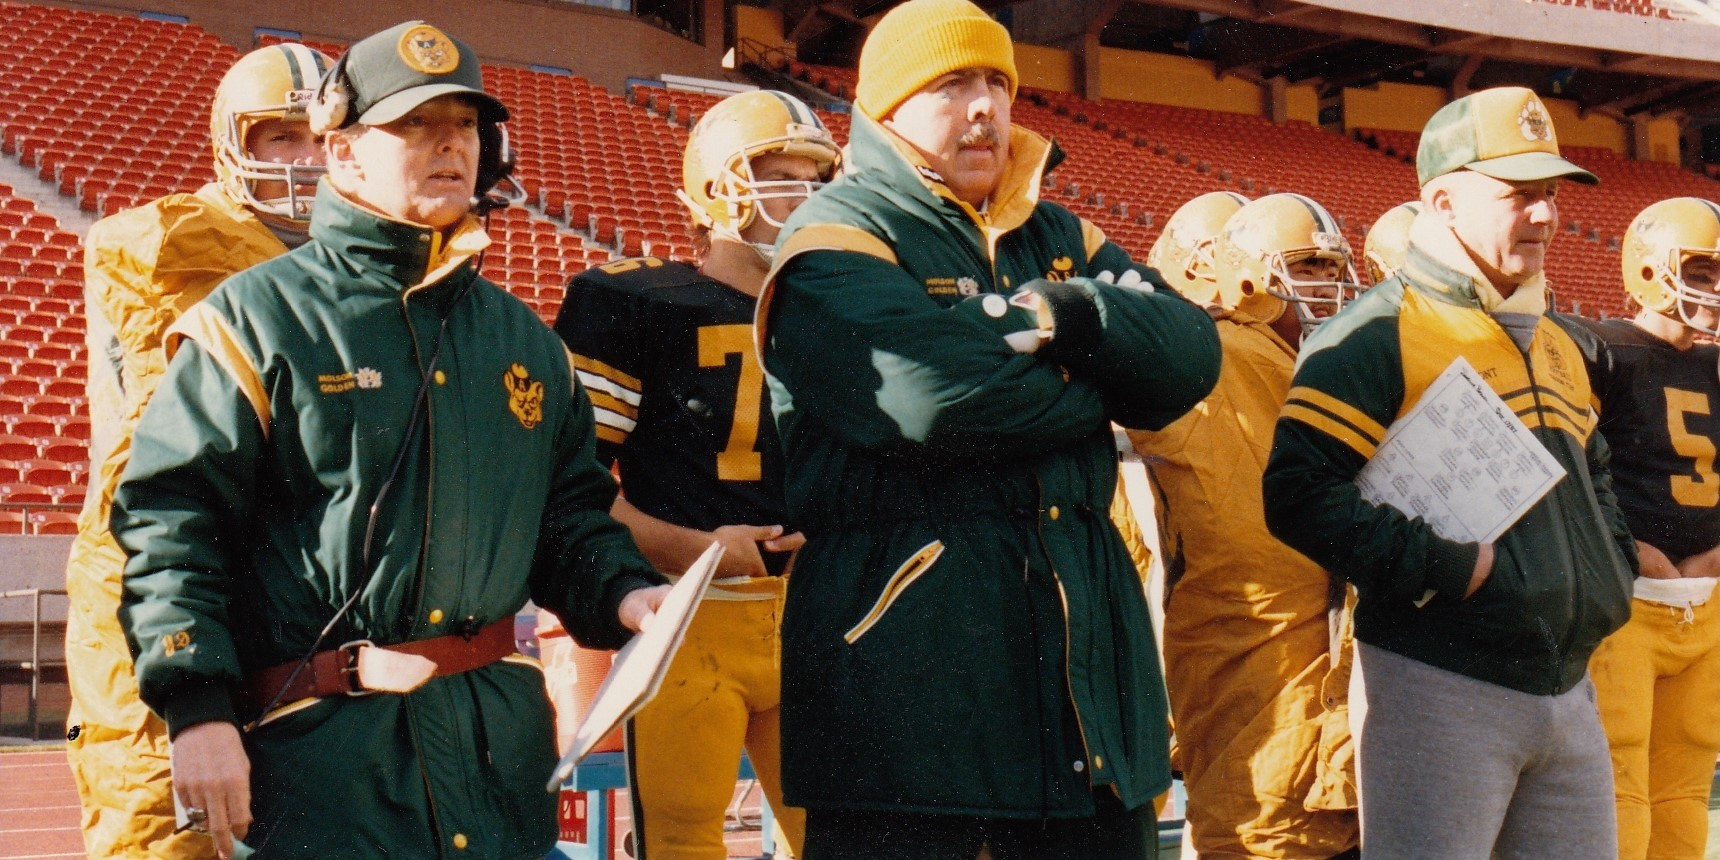 Jim Donlevy (second left) coached the U of A Golden Bears football team for 18 seasons, winning two Vanier Cups and five Canada West championships. (Photo: Golden Bears and Pandas Athletics)